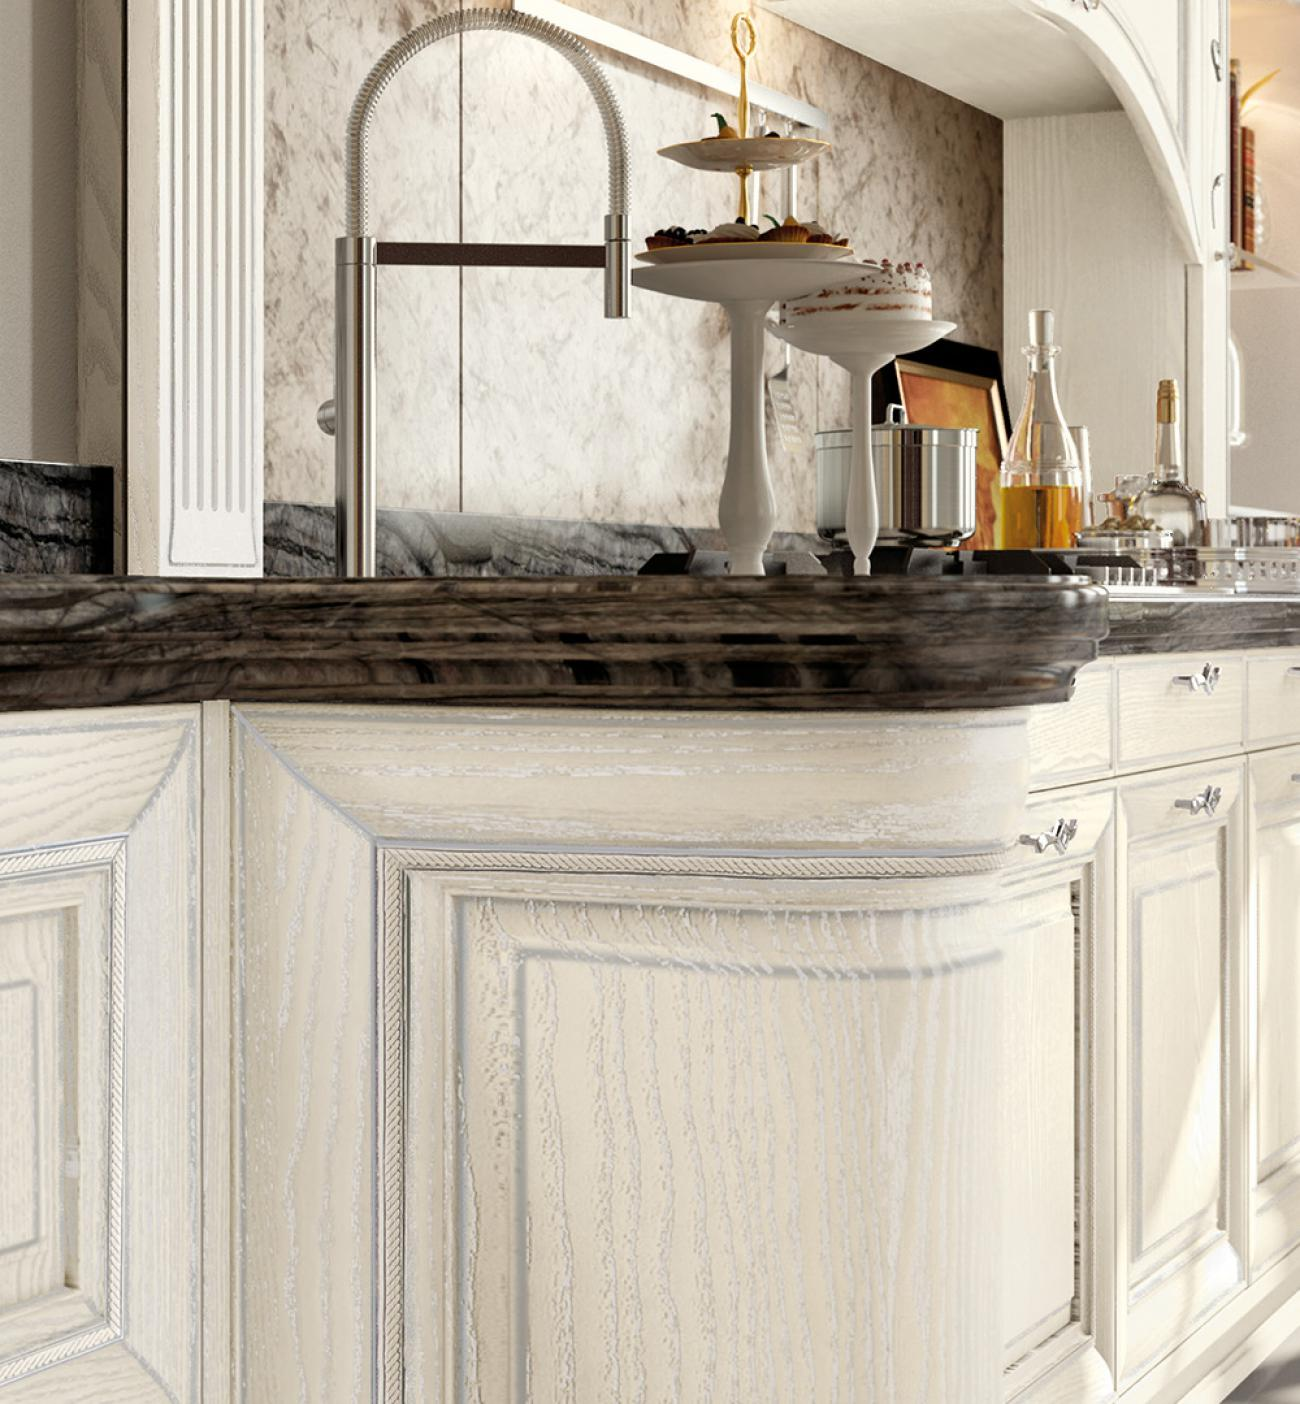 Classic Kitchens - Pantheon - 05